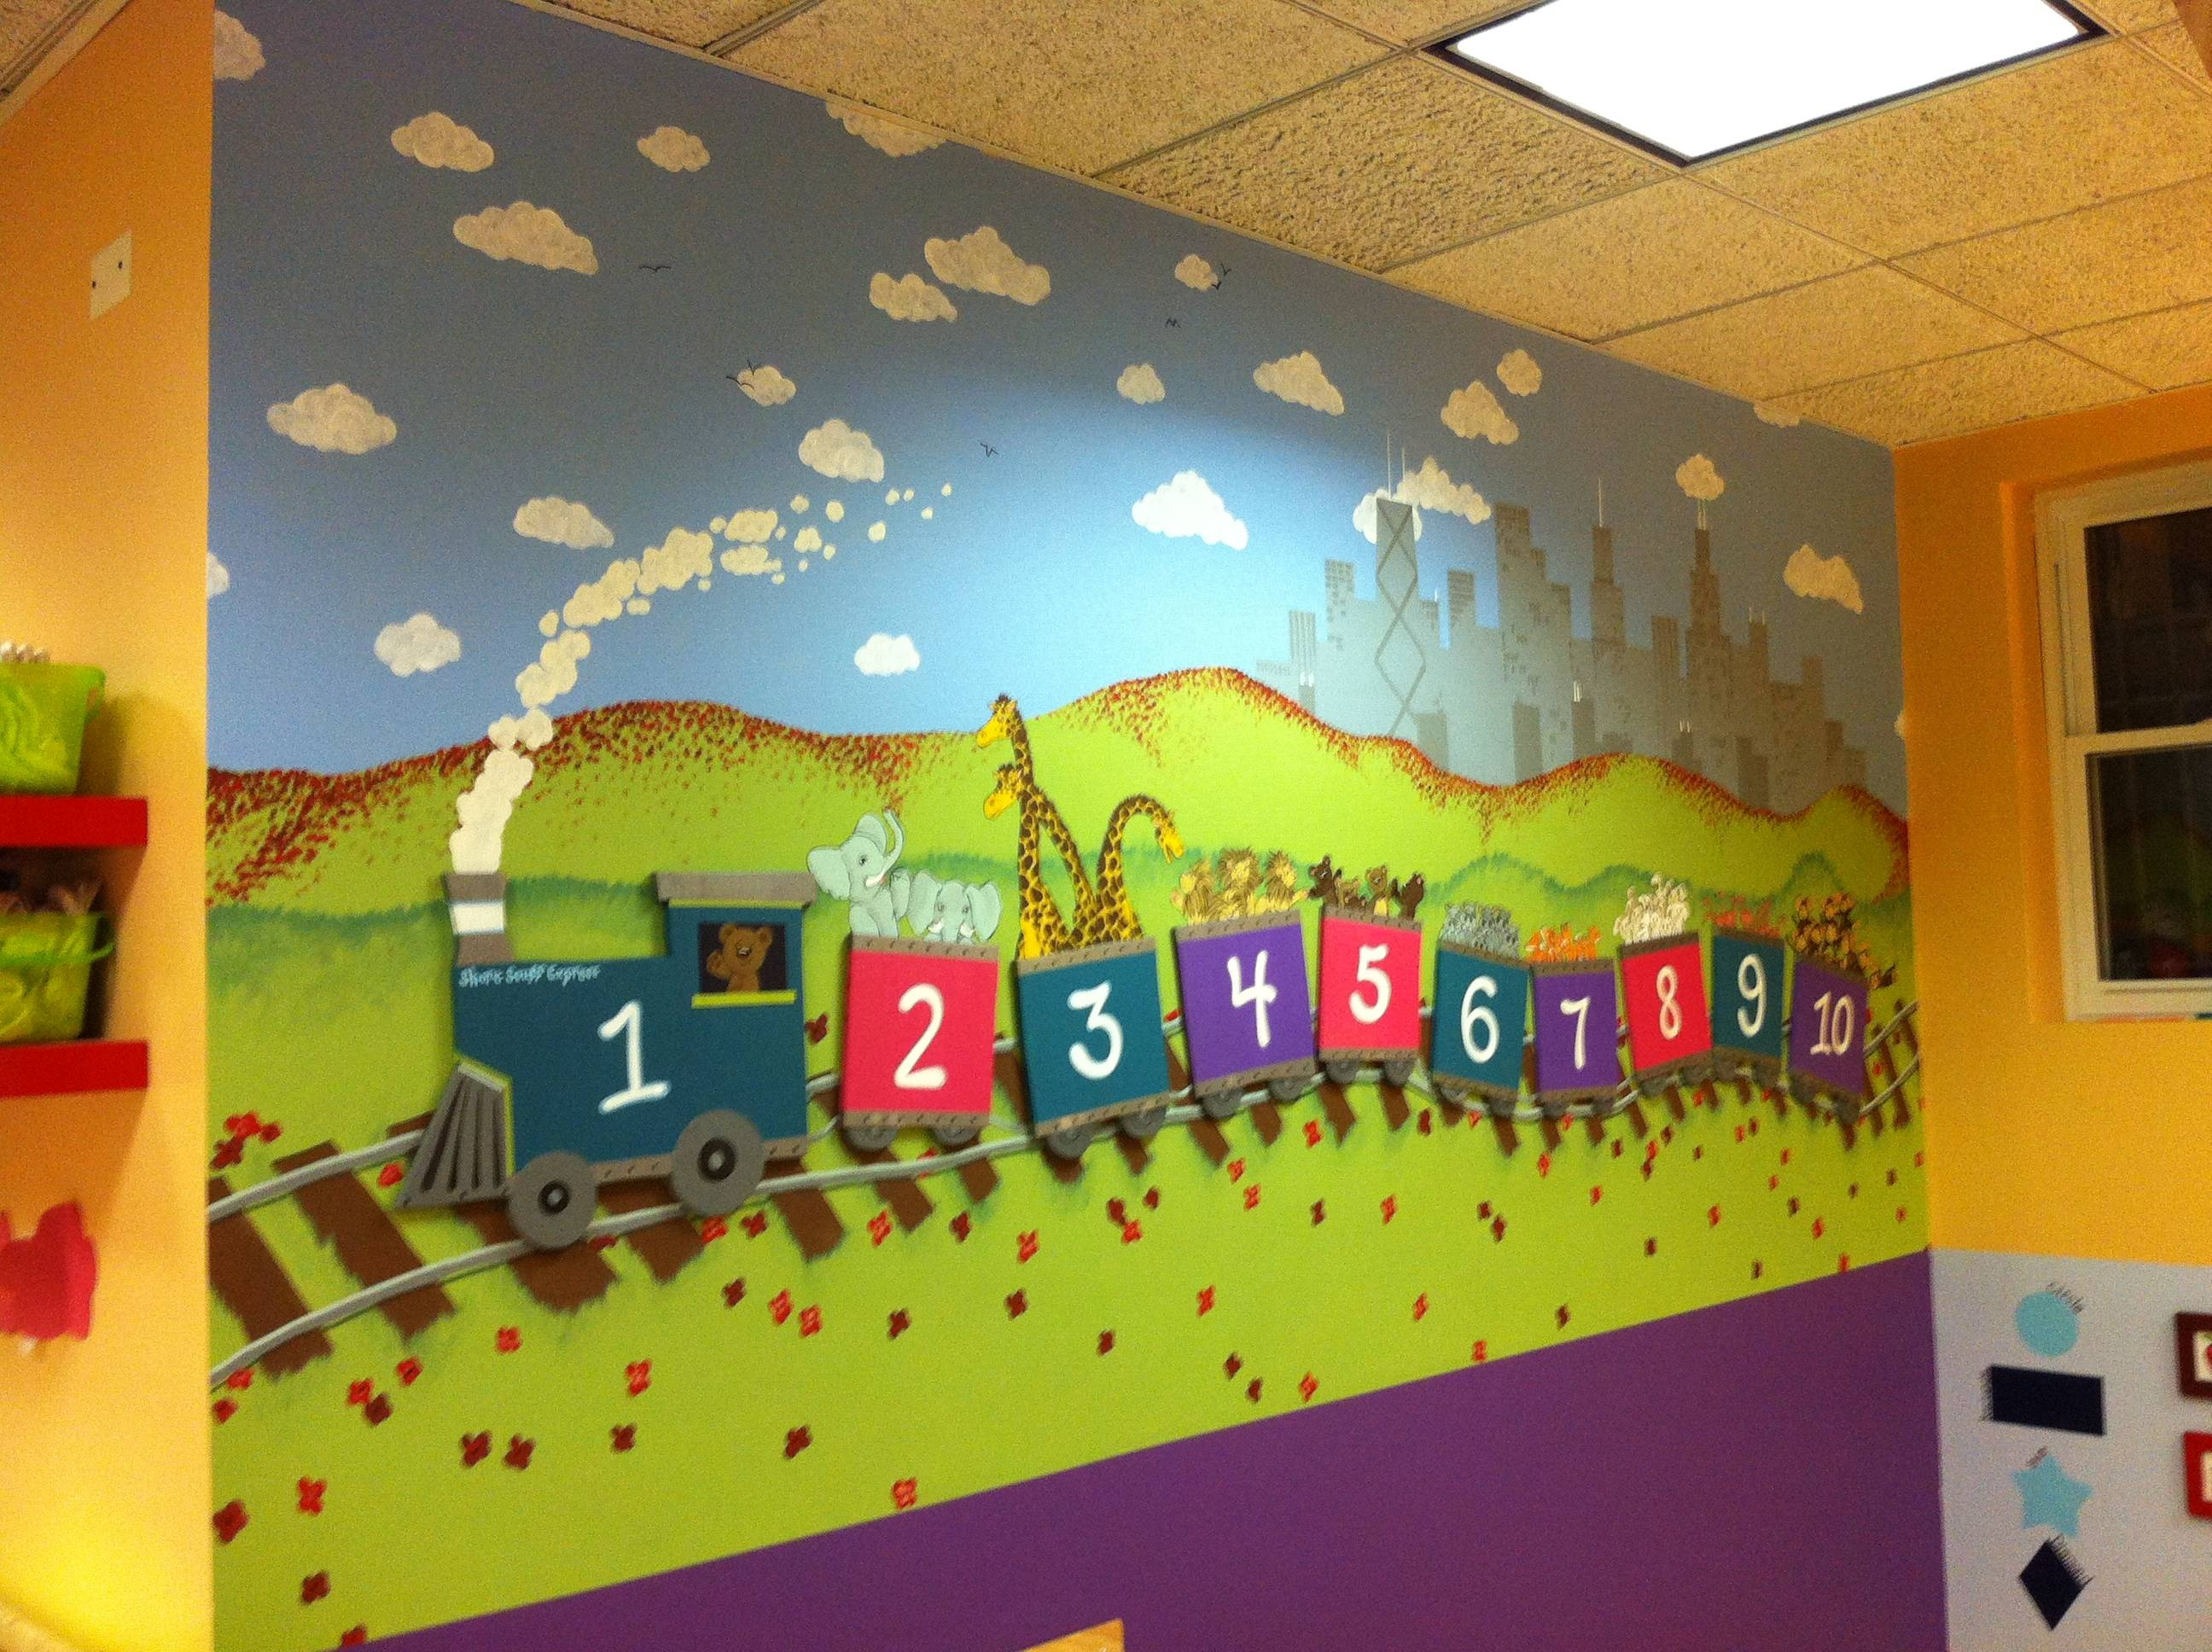 Preschool Wall Decoration Ideas – Bathroomstall Inside Most Recently Released Preschool Wall Decoration (View 26 of 30)